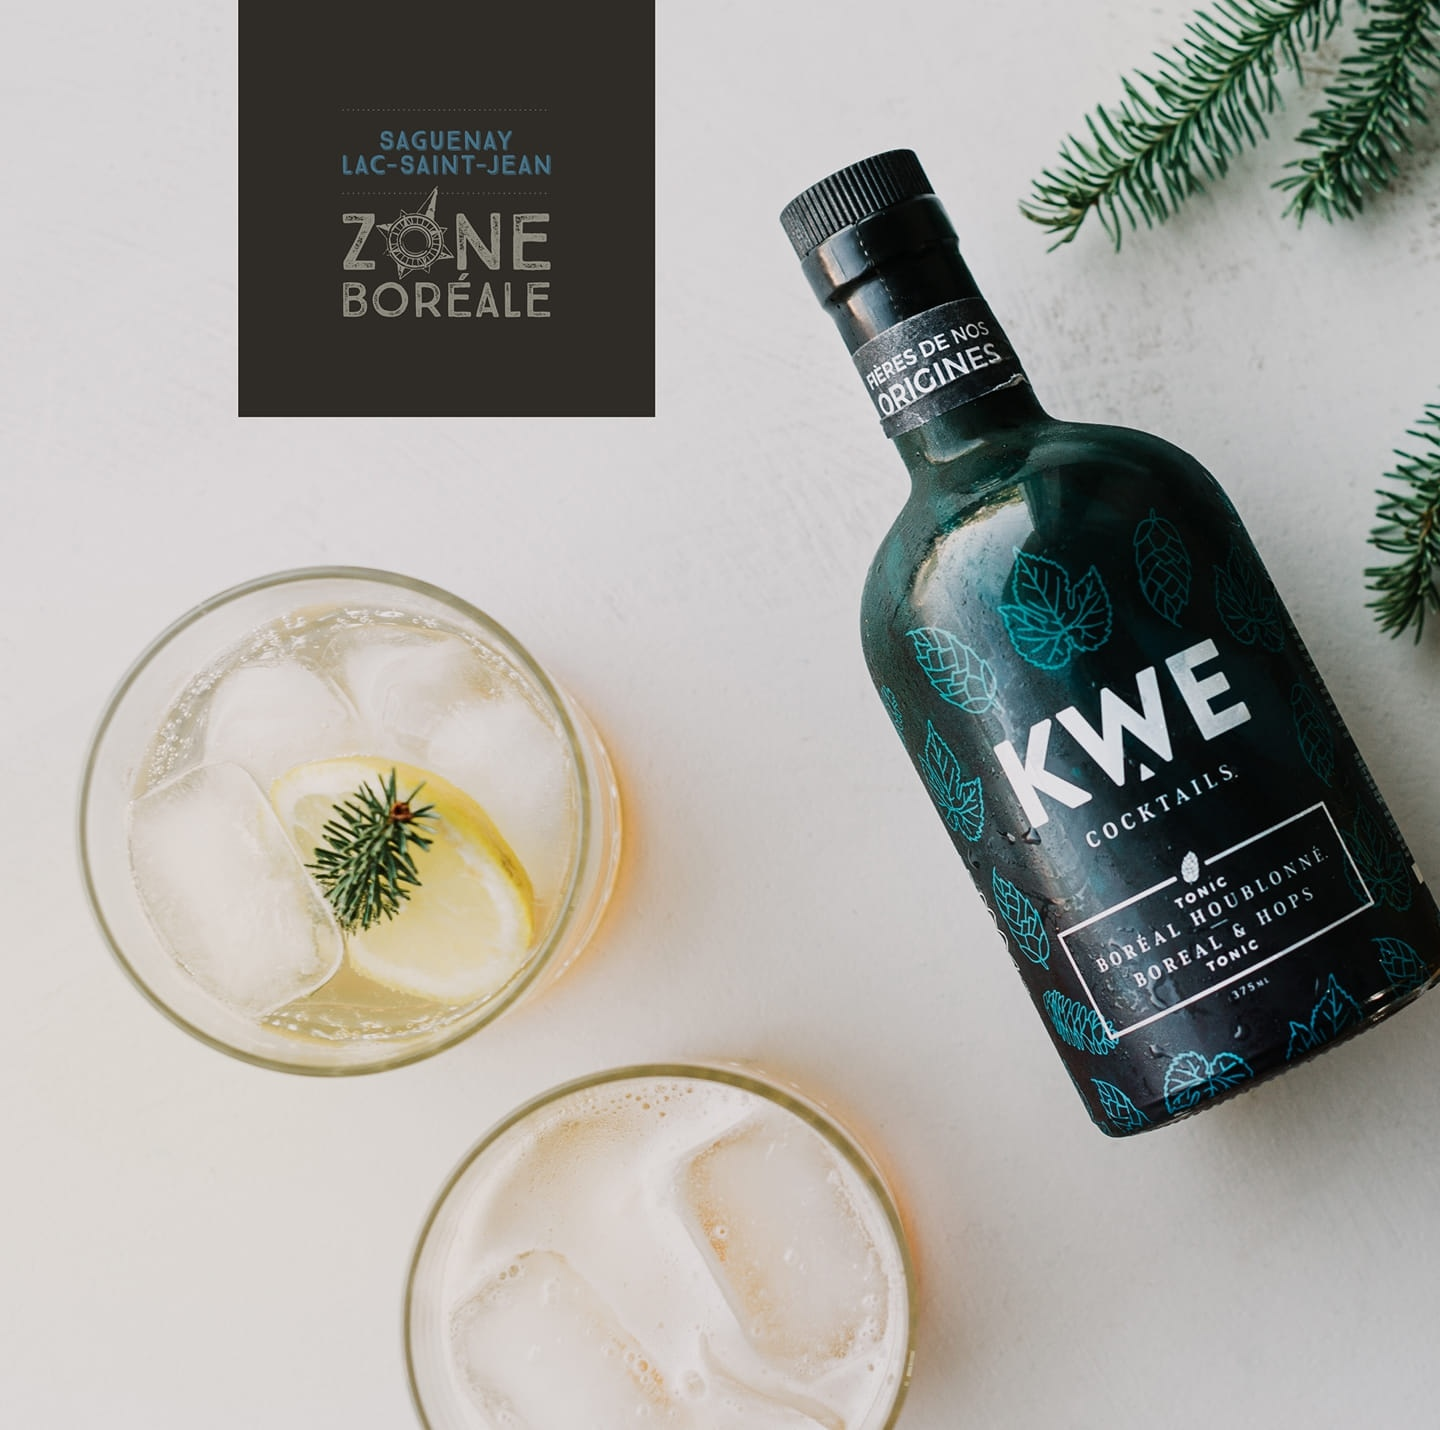 KWE Cocktails KWE Cocktails - Northern Boreal Tonic